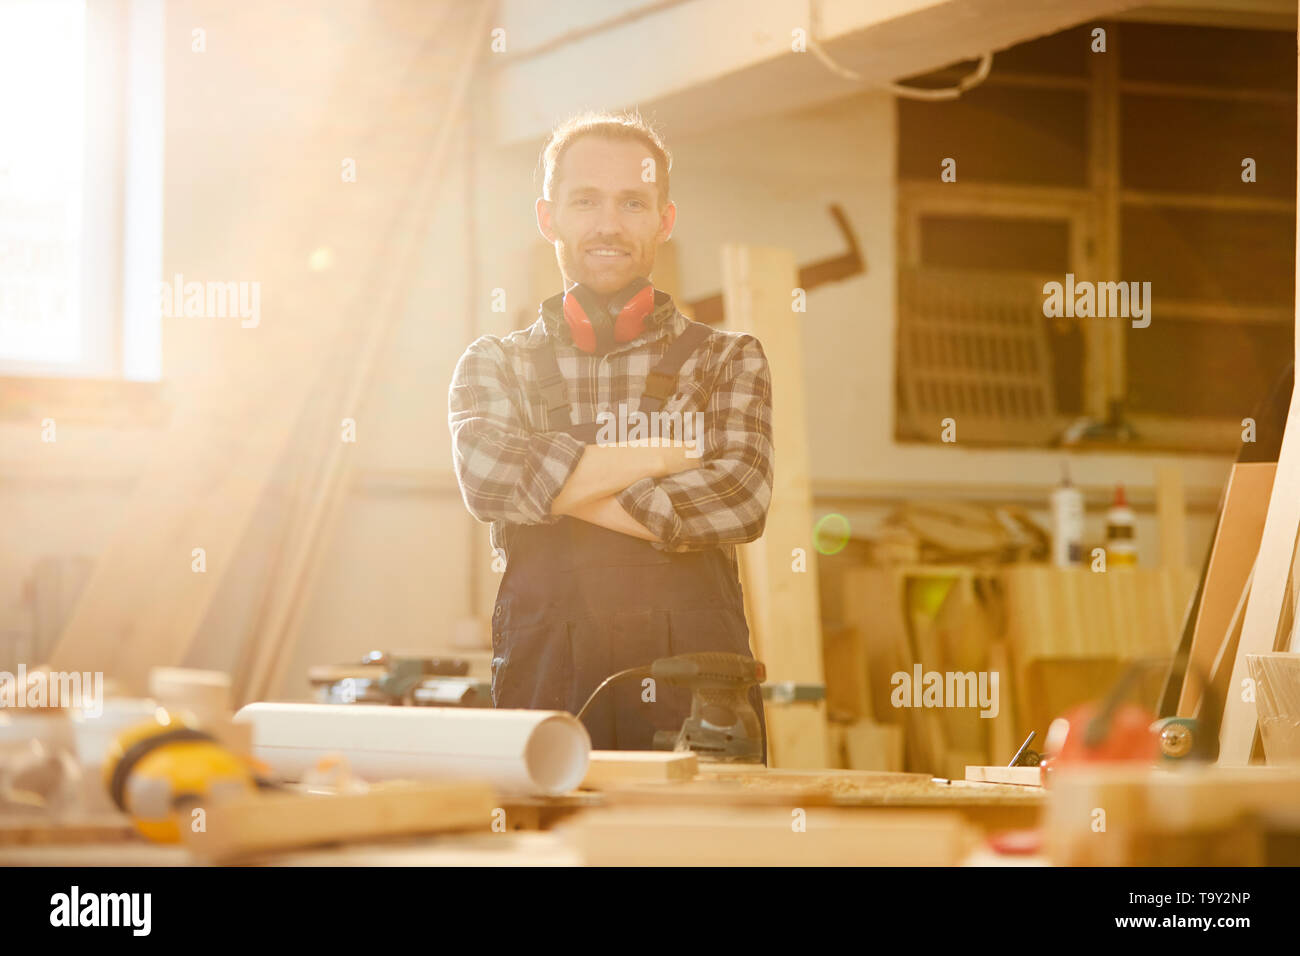 Waist up portrait of contemporary carpenter looking at camera while working in joinery lit by sunlight, copy space - Stock Image